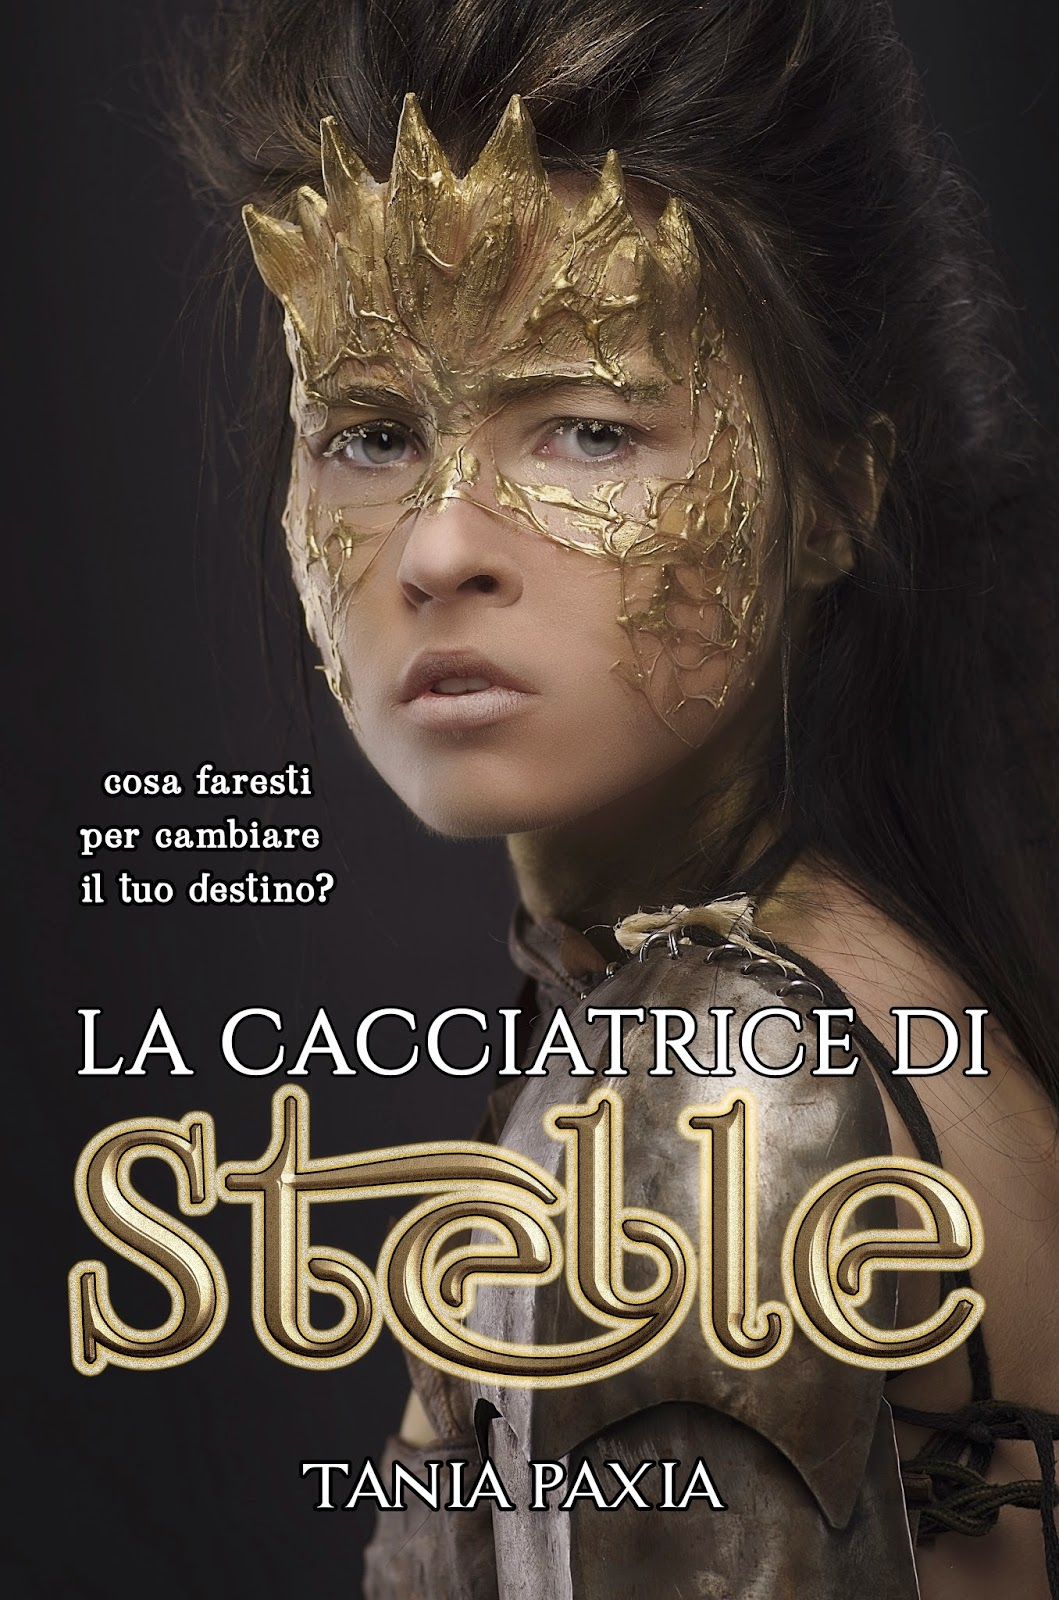 http://www.amazon.it/La-cacciatrice-stelle-Tania-Paxia-ebook/dp/B00T76GOF8